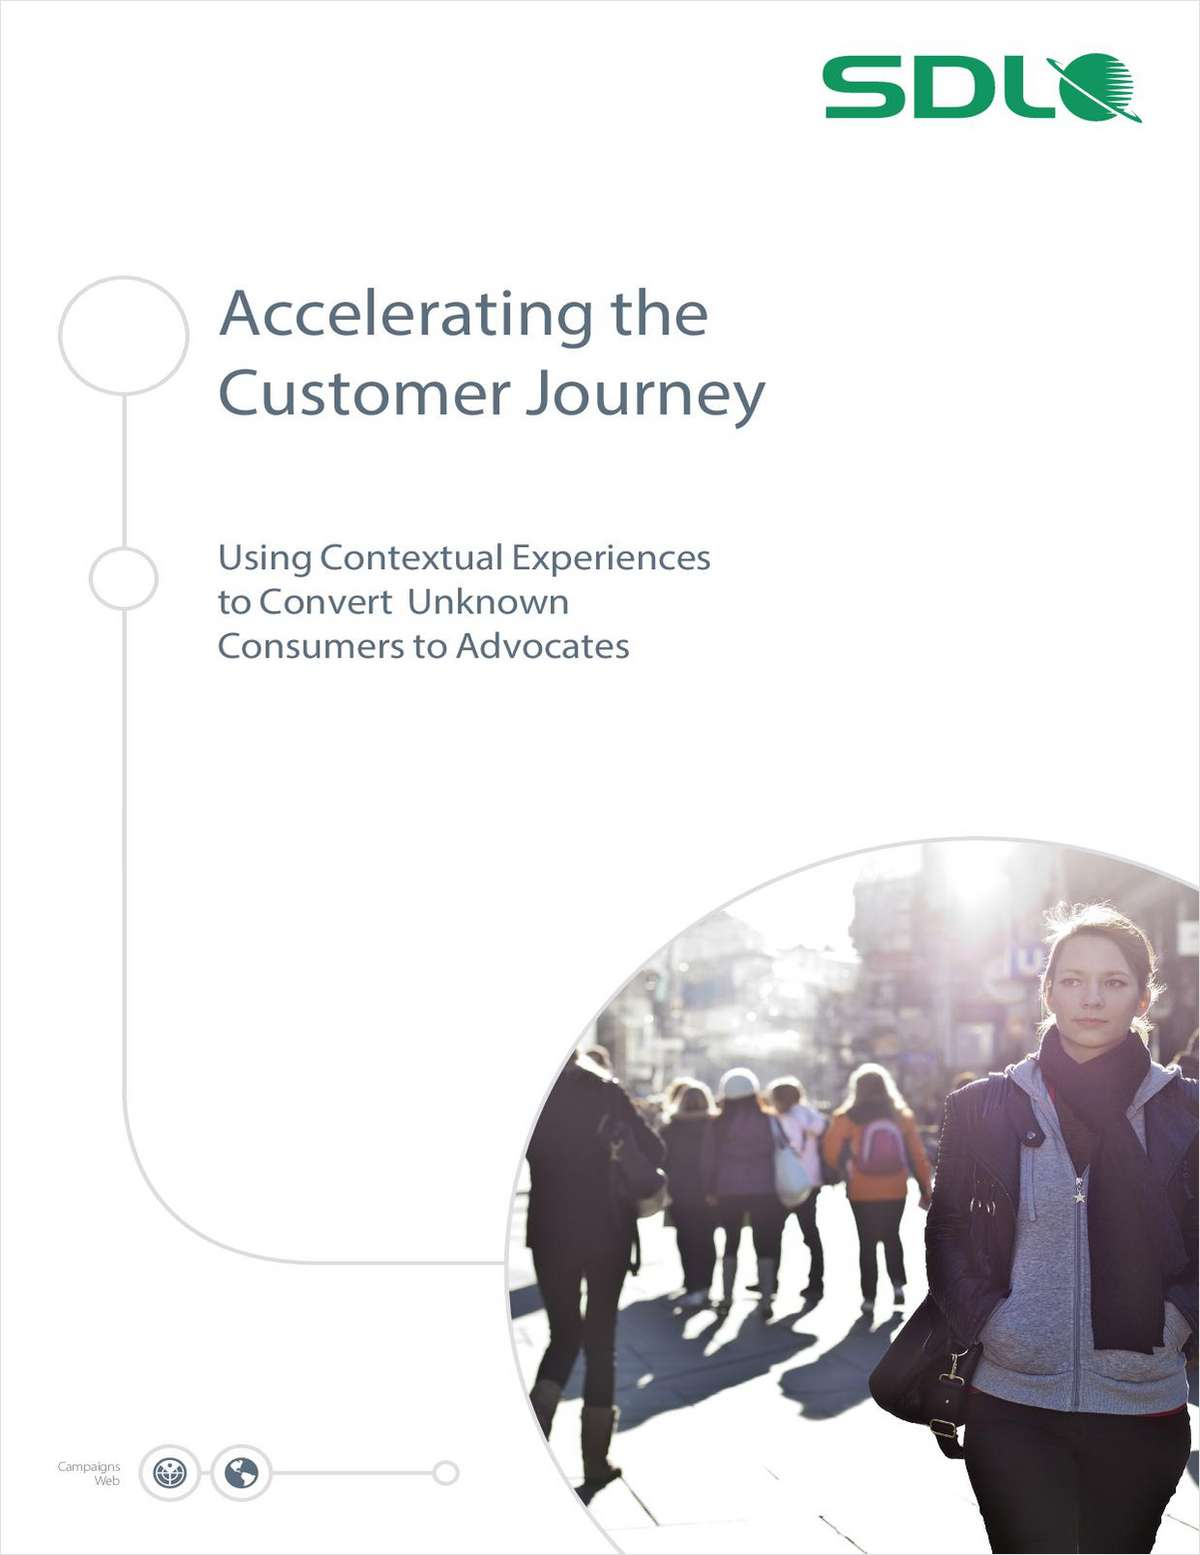 Accelerating Customer Journeys: Using Contextual Experiences to Convert Unknown Consumers to Advocates